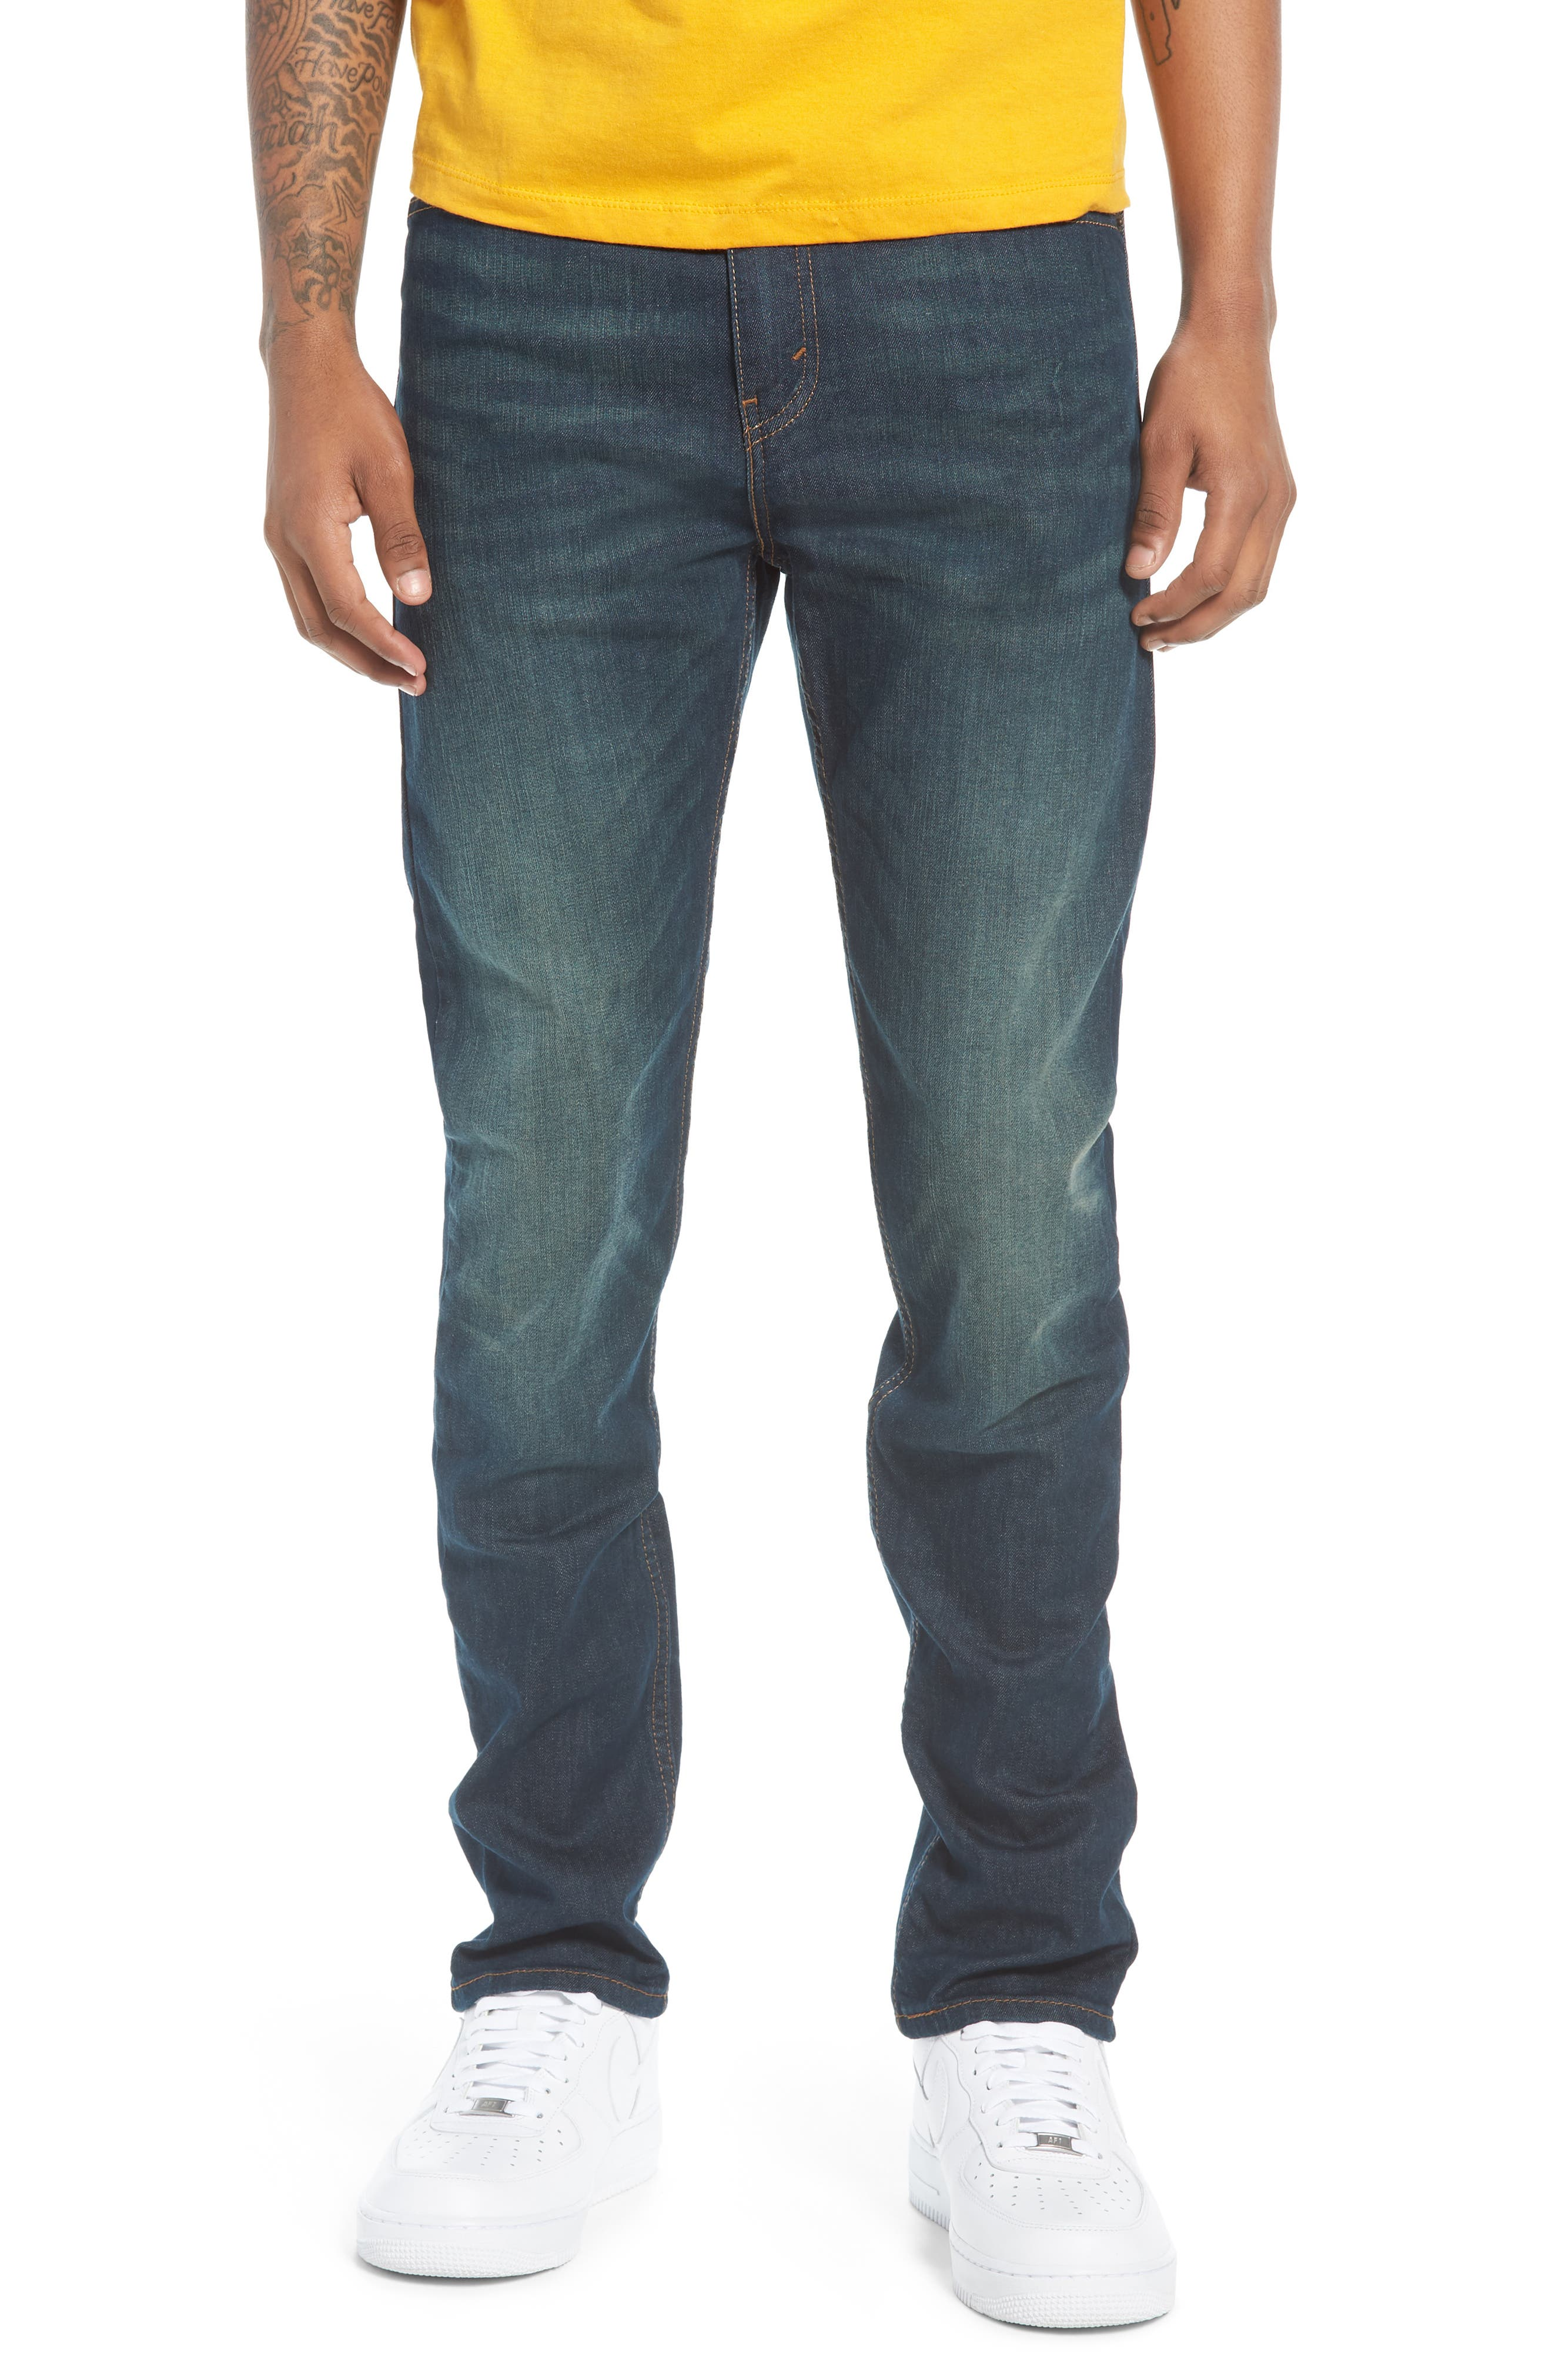 510<sup>™</sup> Skinny Fit Jeans,                             Main thumbnail 1, color,                             400